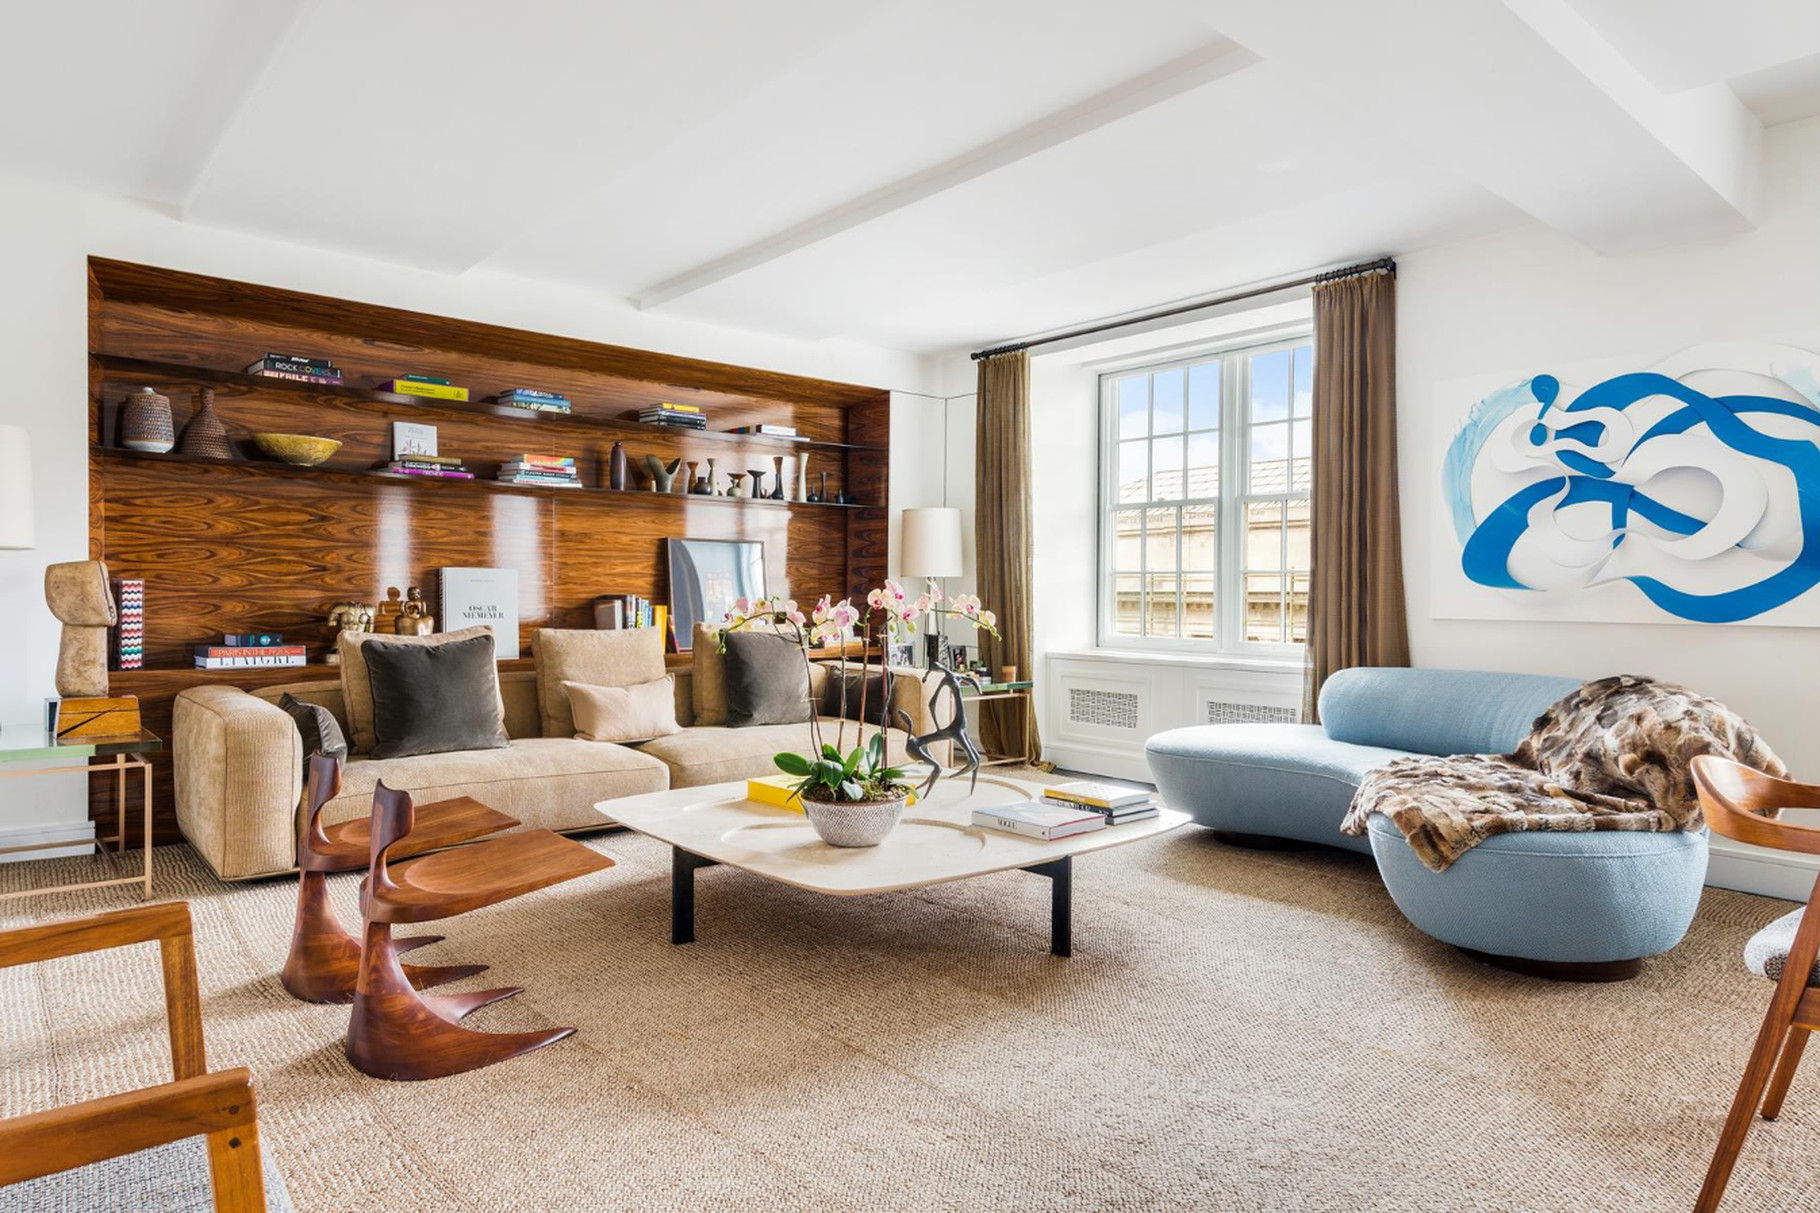 Featured Listing: Fifth Avenue Pad With Views of Metropolitan Museum of Art Asks $13.49 Million